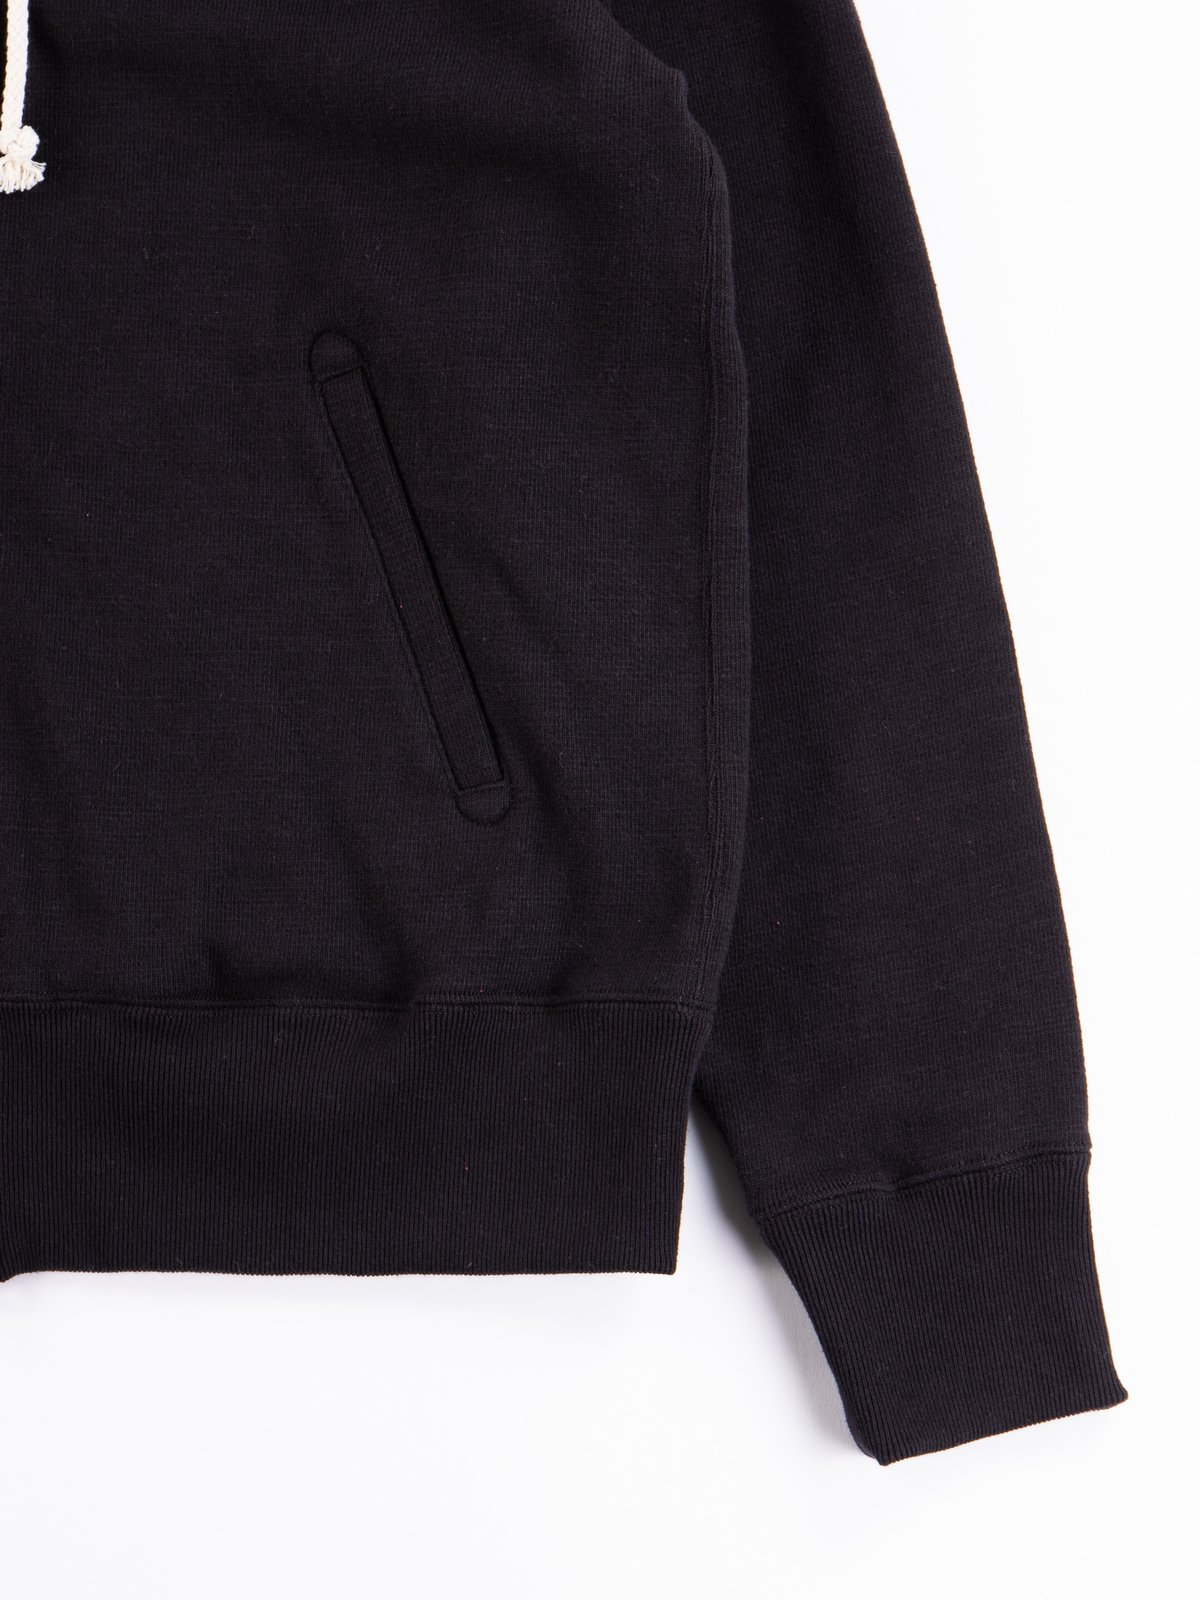 Black GG Full Zip Sweatshirt - Image 4